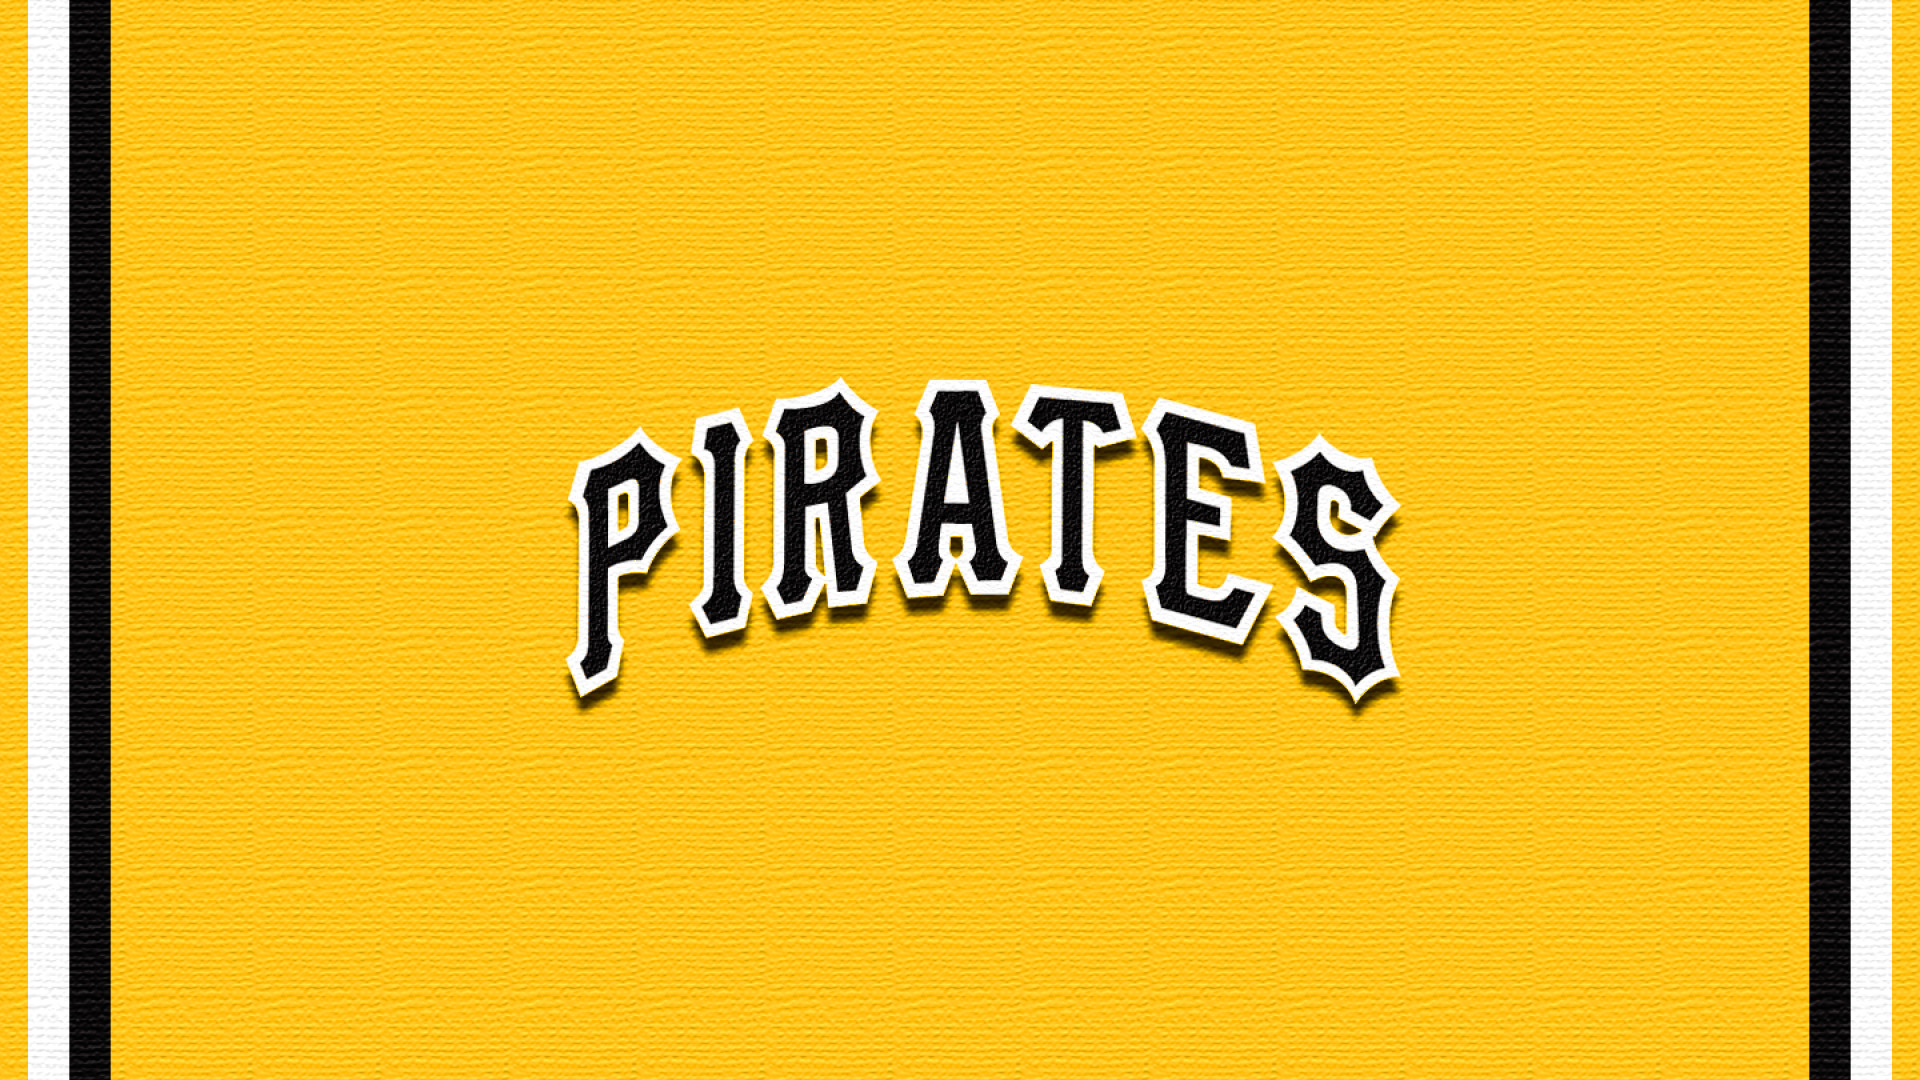 Pittsburgh Pirates HD Wallpaper | HD Wallpapers, HD Backgrounds